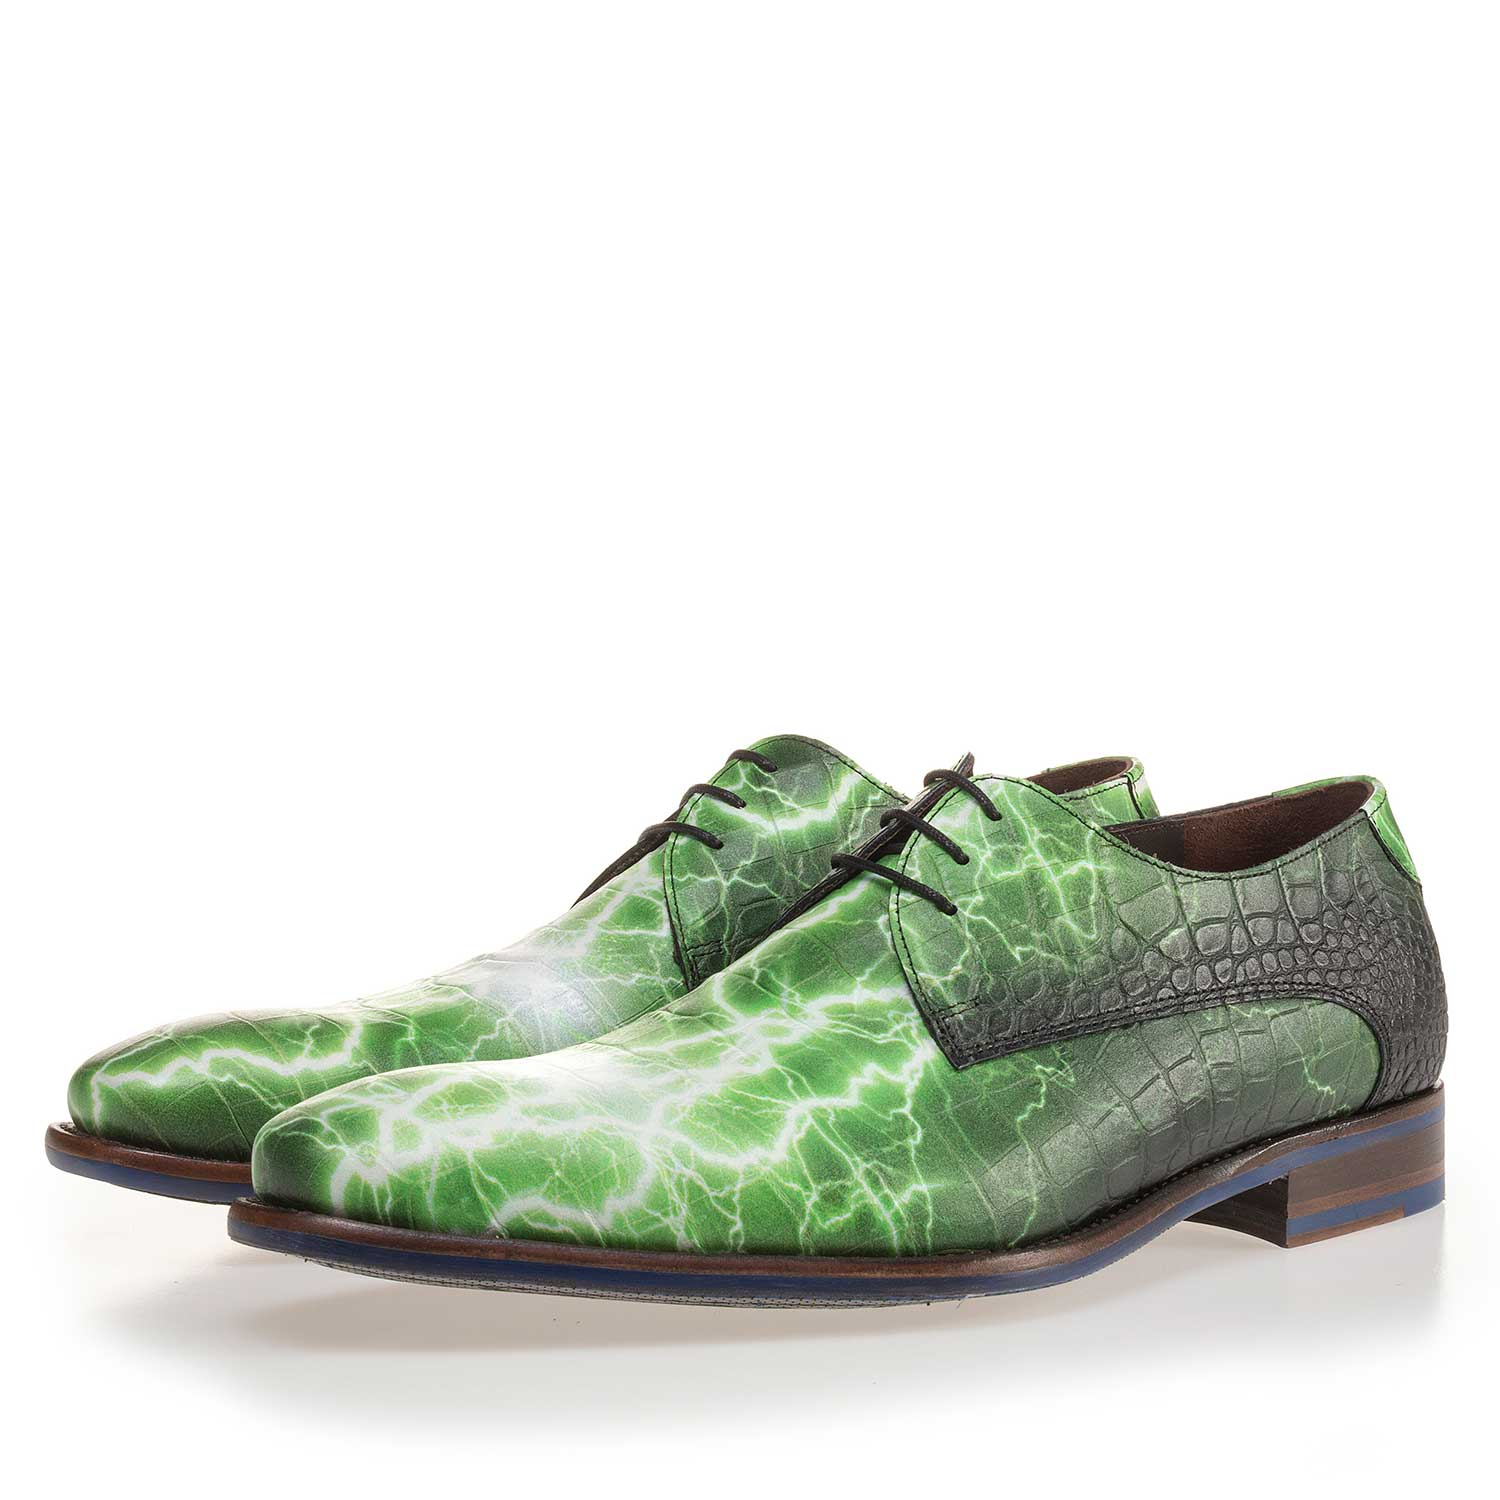 14267/01 - Premium green printed leather lace shoe